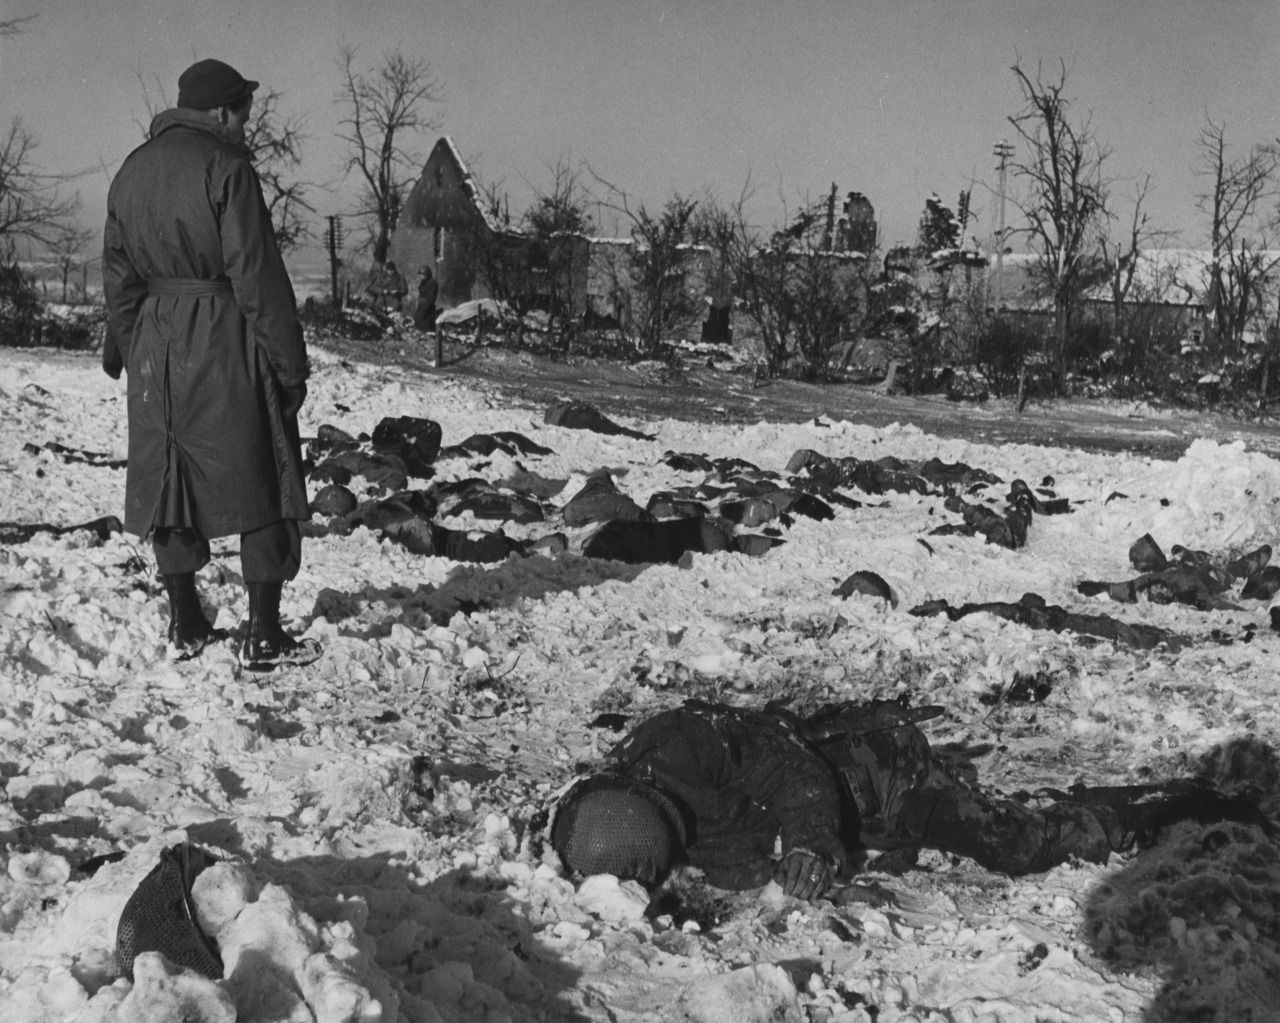 An American soldier looks numbly at bodies of American prisoners who were shot by Germans, near Malmedy, Belgium. December 17, 1944.